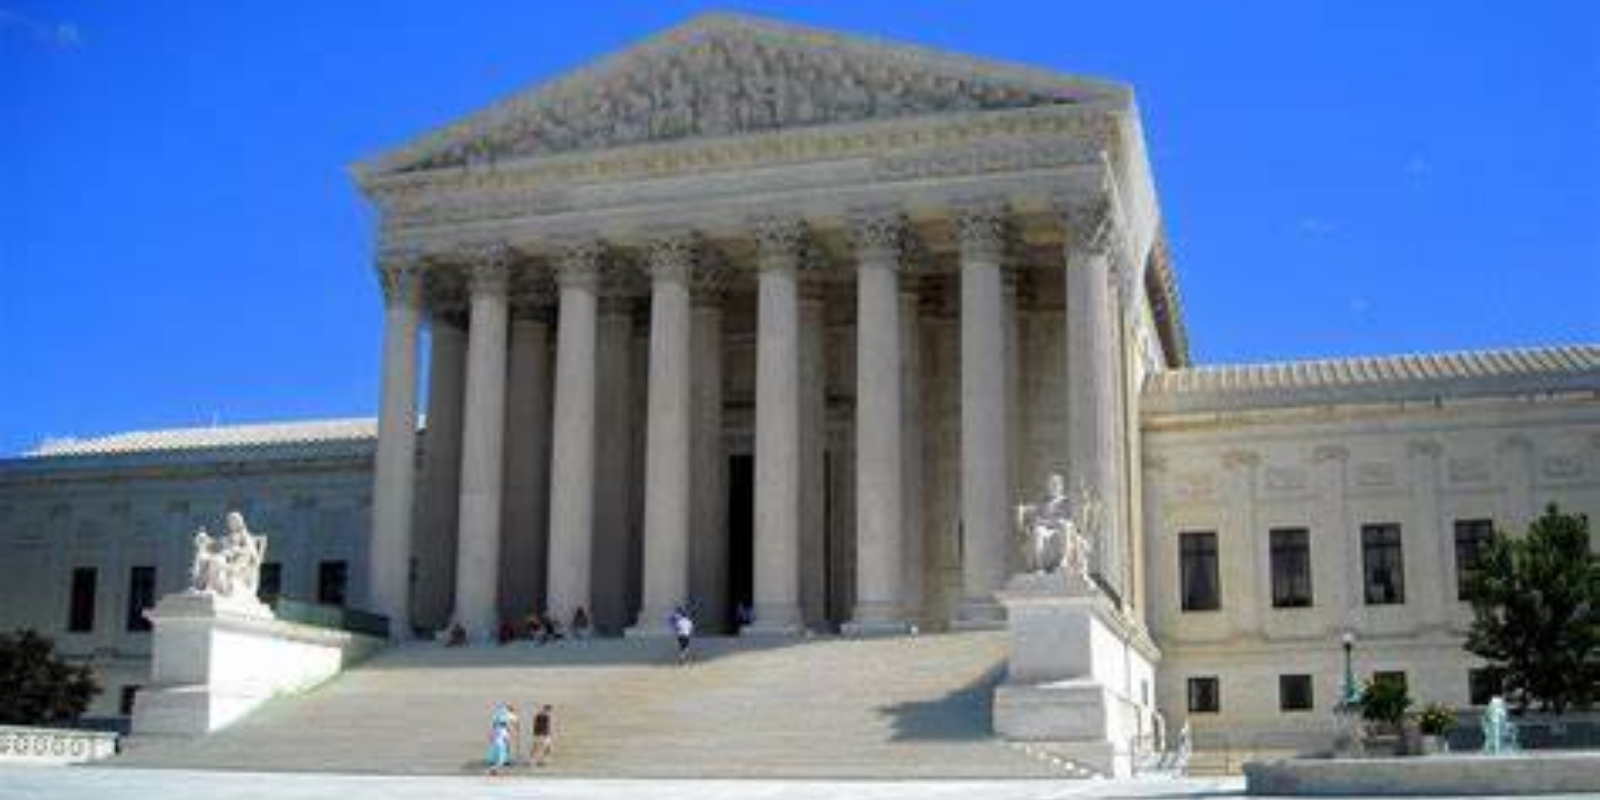 US Supreme Court to hear case that may lead to end of Roe v. Wade